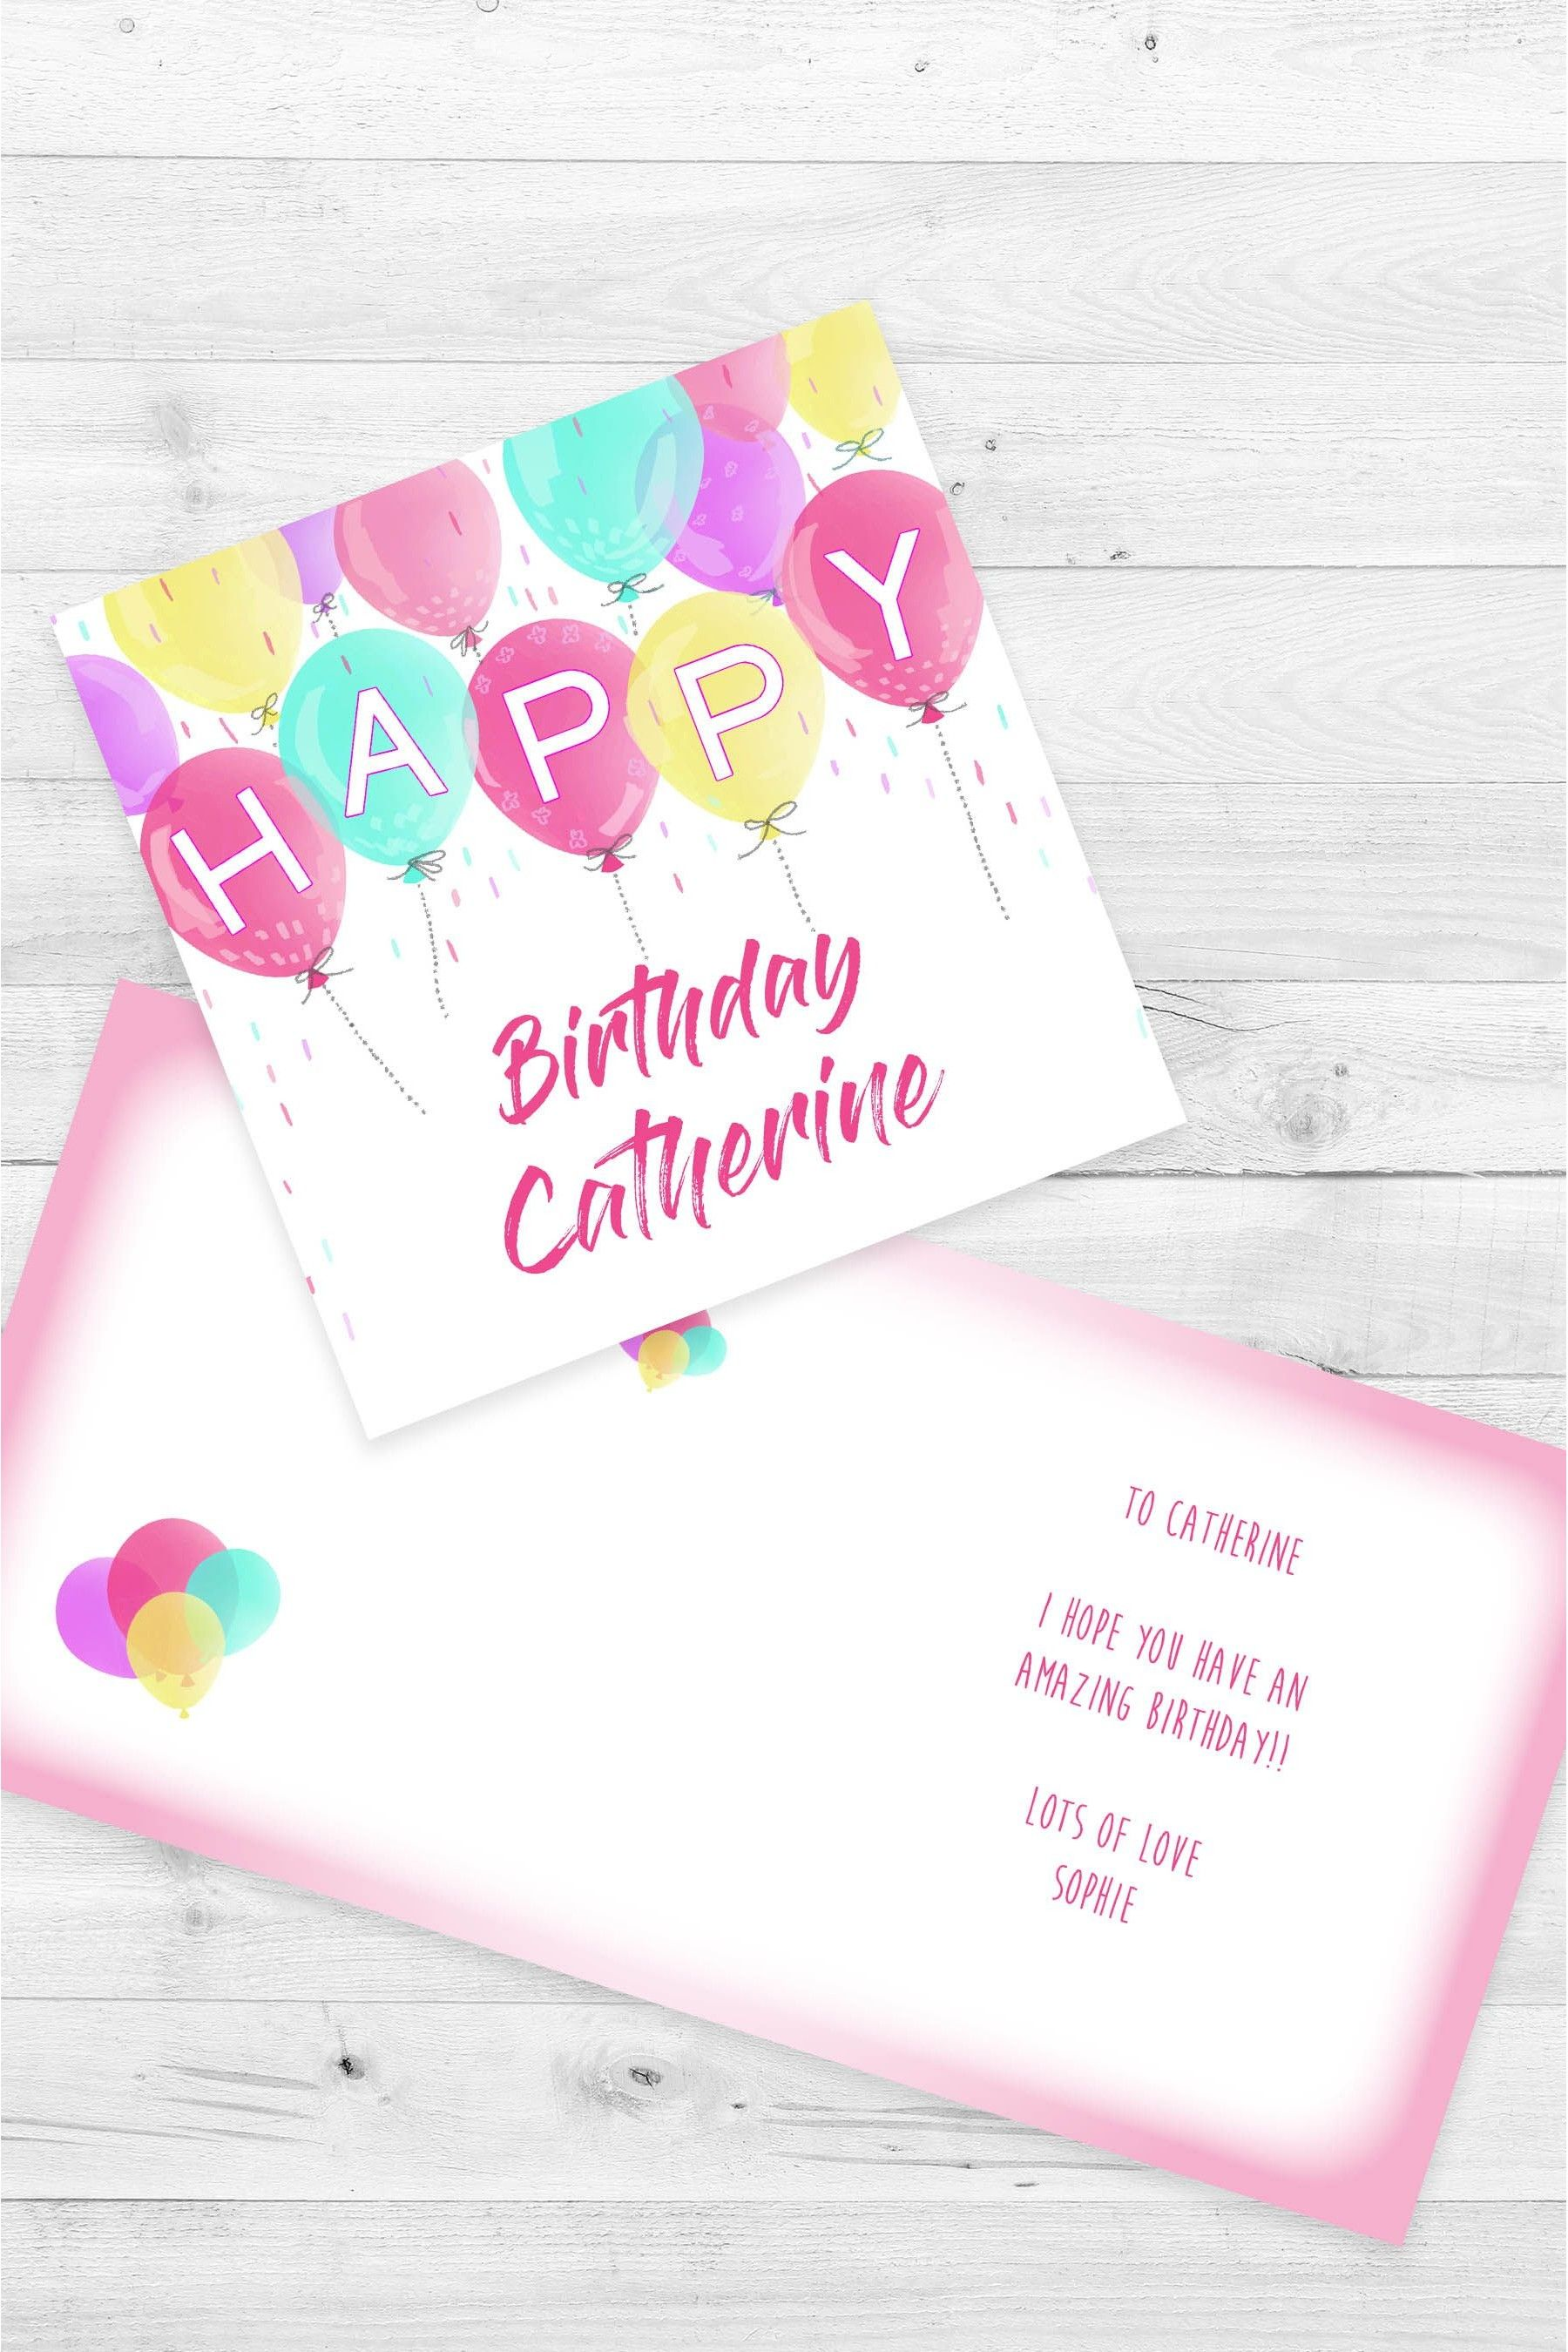 Personalised Balloon Birthday Single Card by Croft Designs